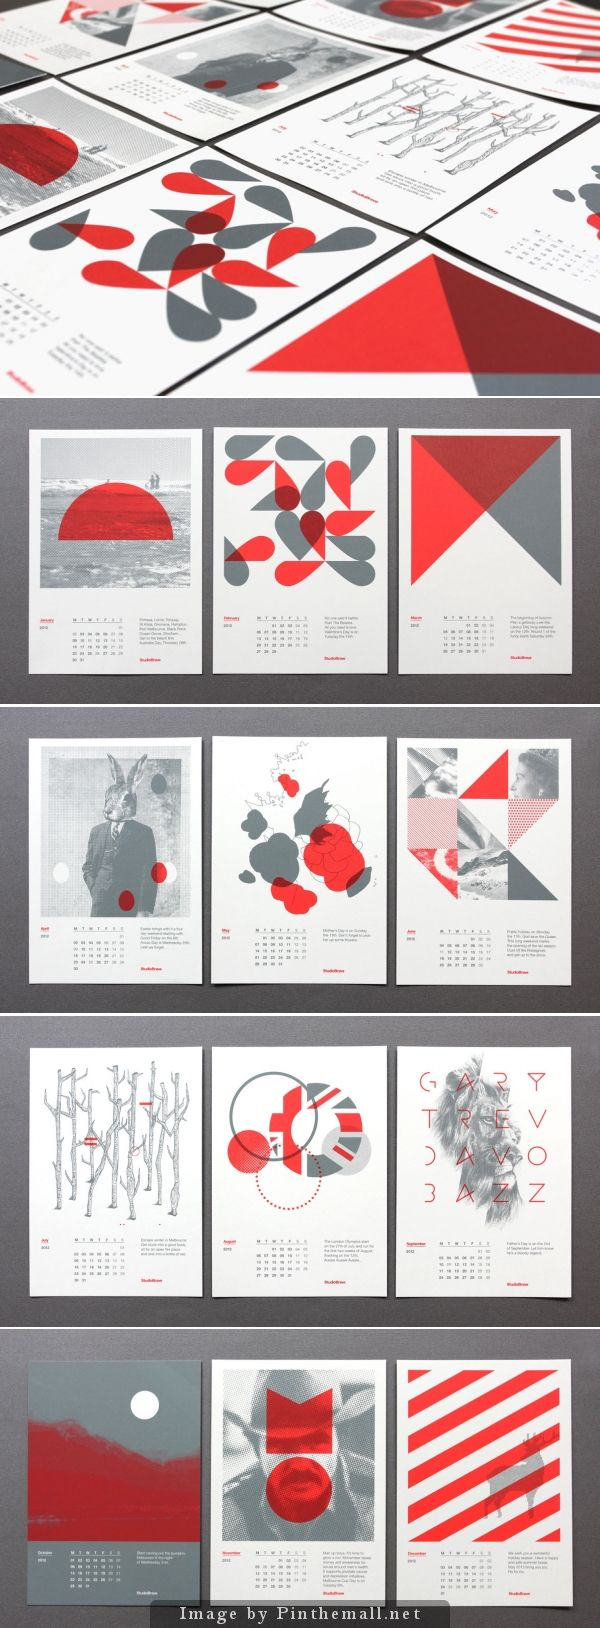 Modern graphic design #calendar cards